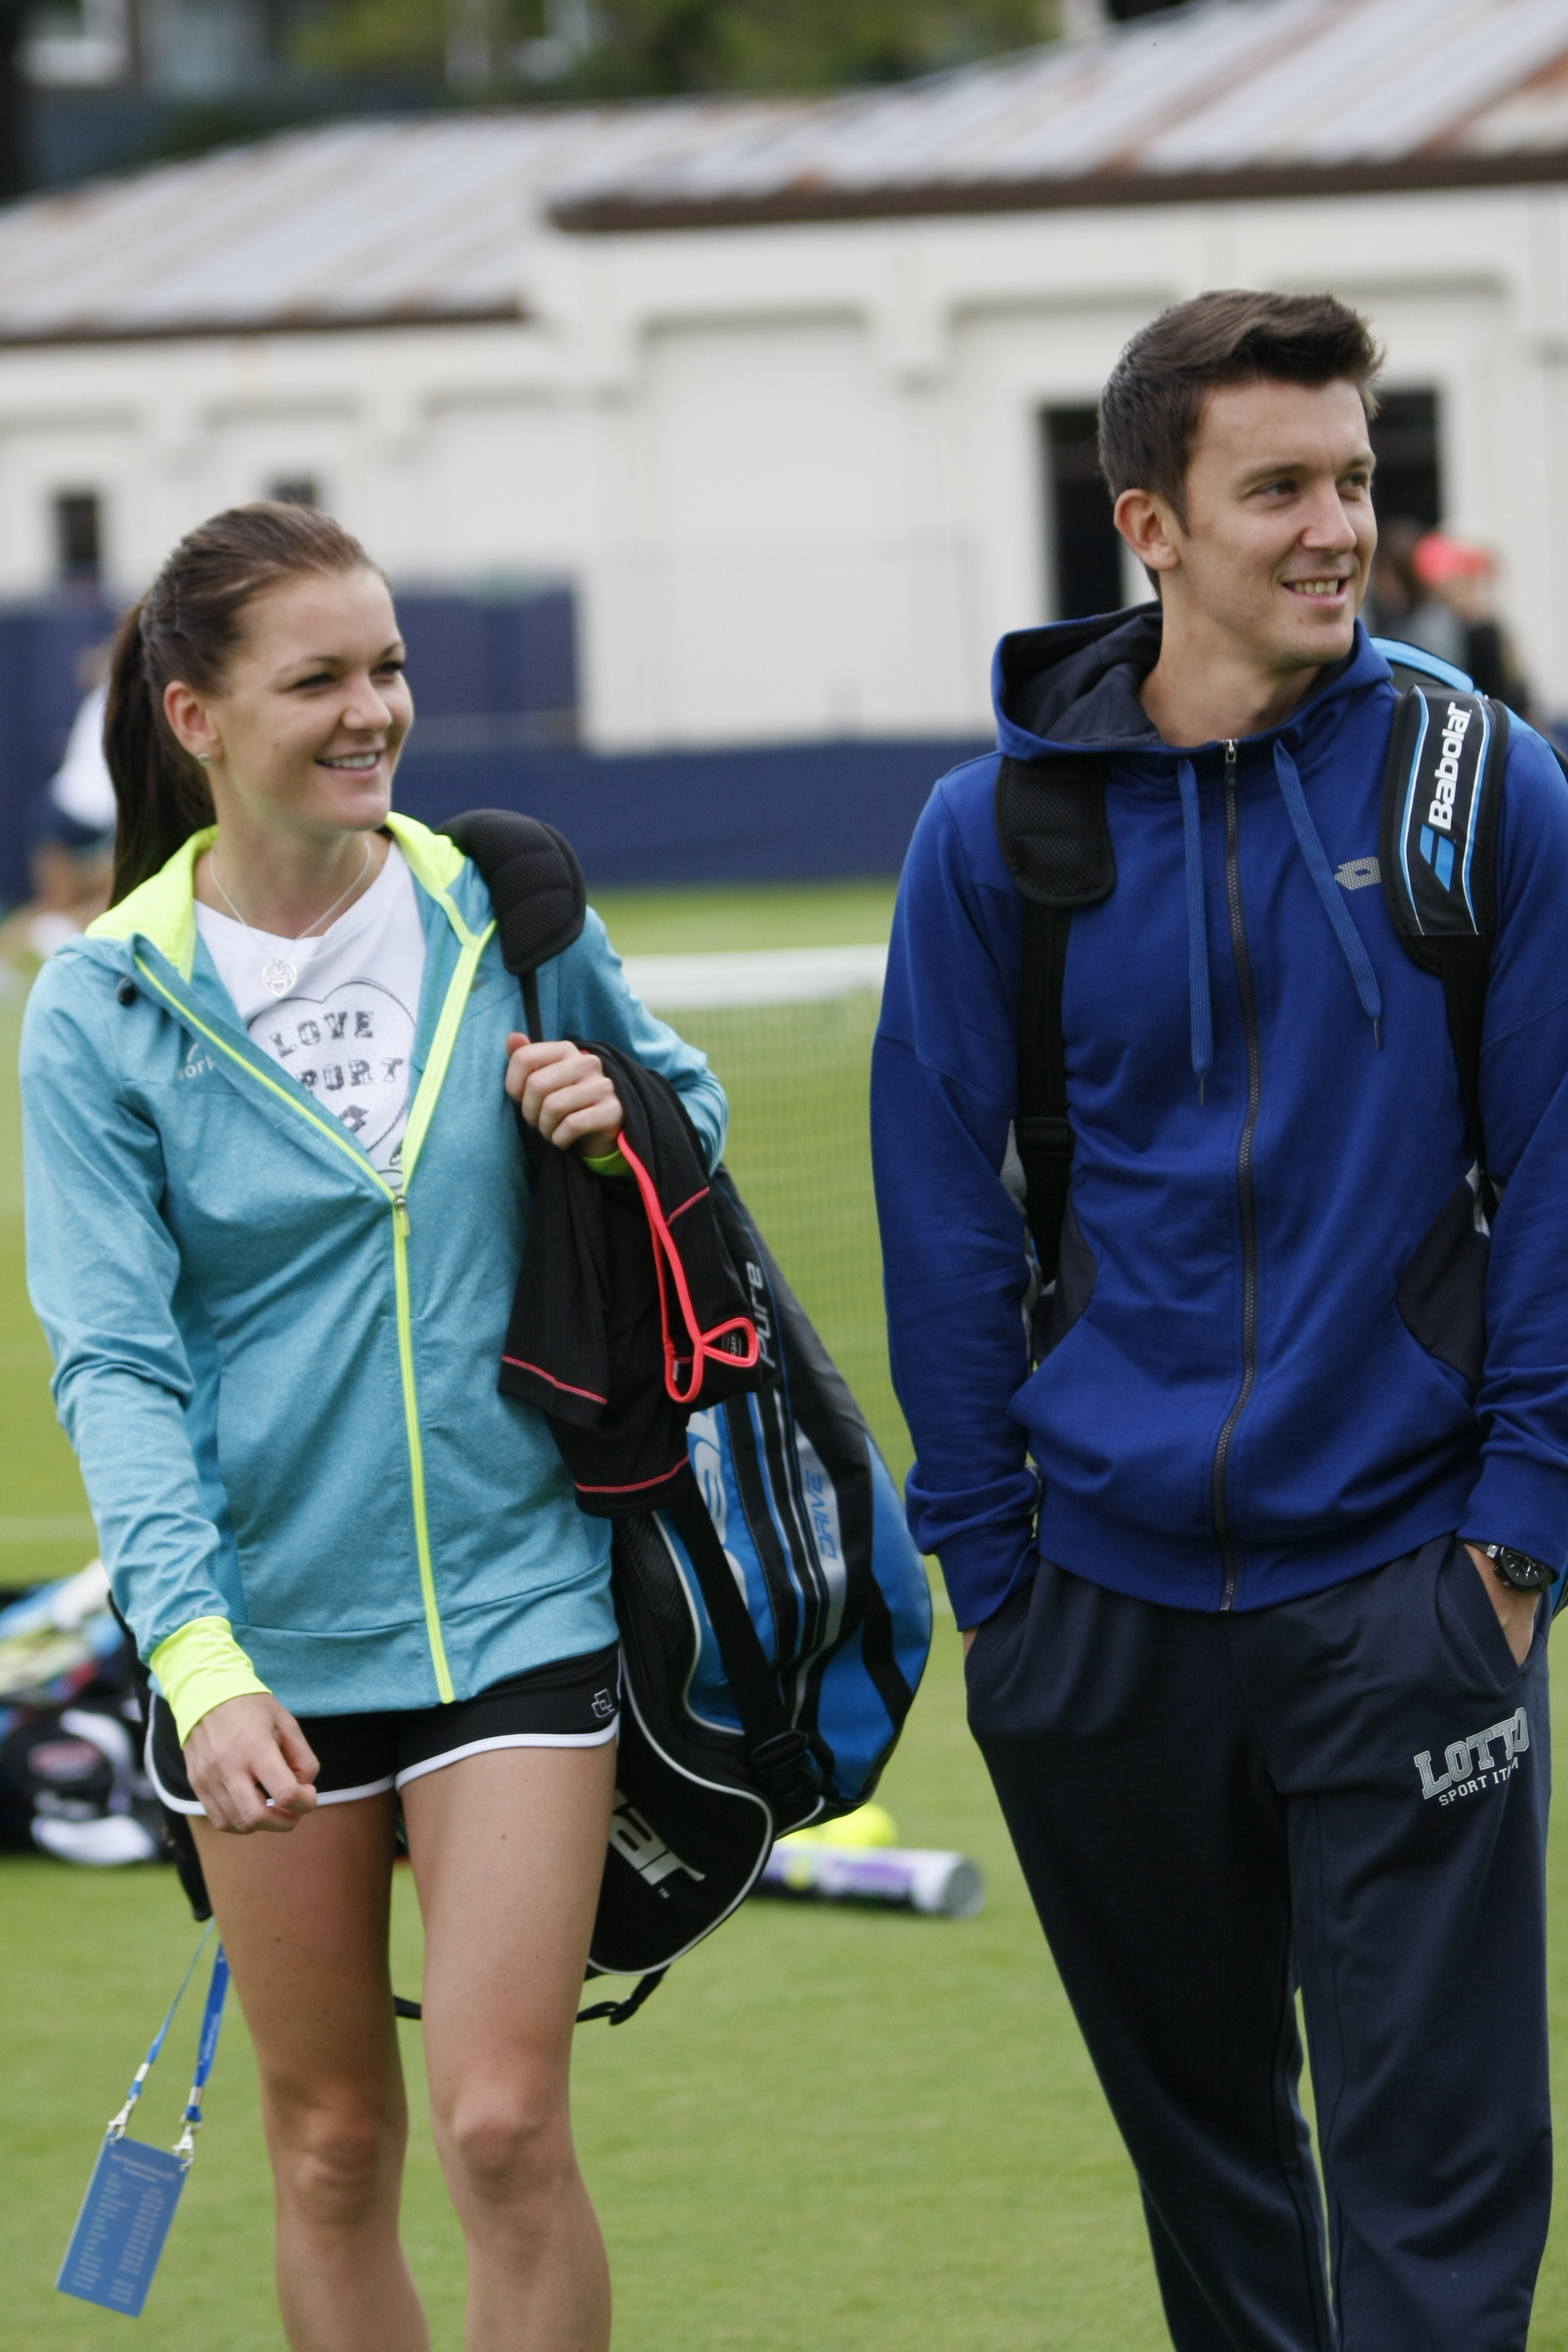 Who is this guy with Aga? - TennisForum.com